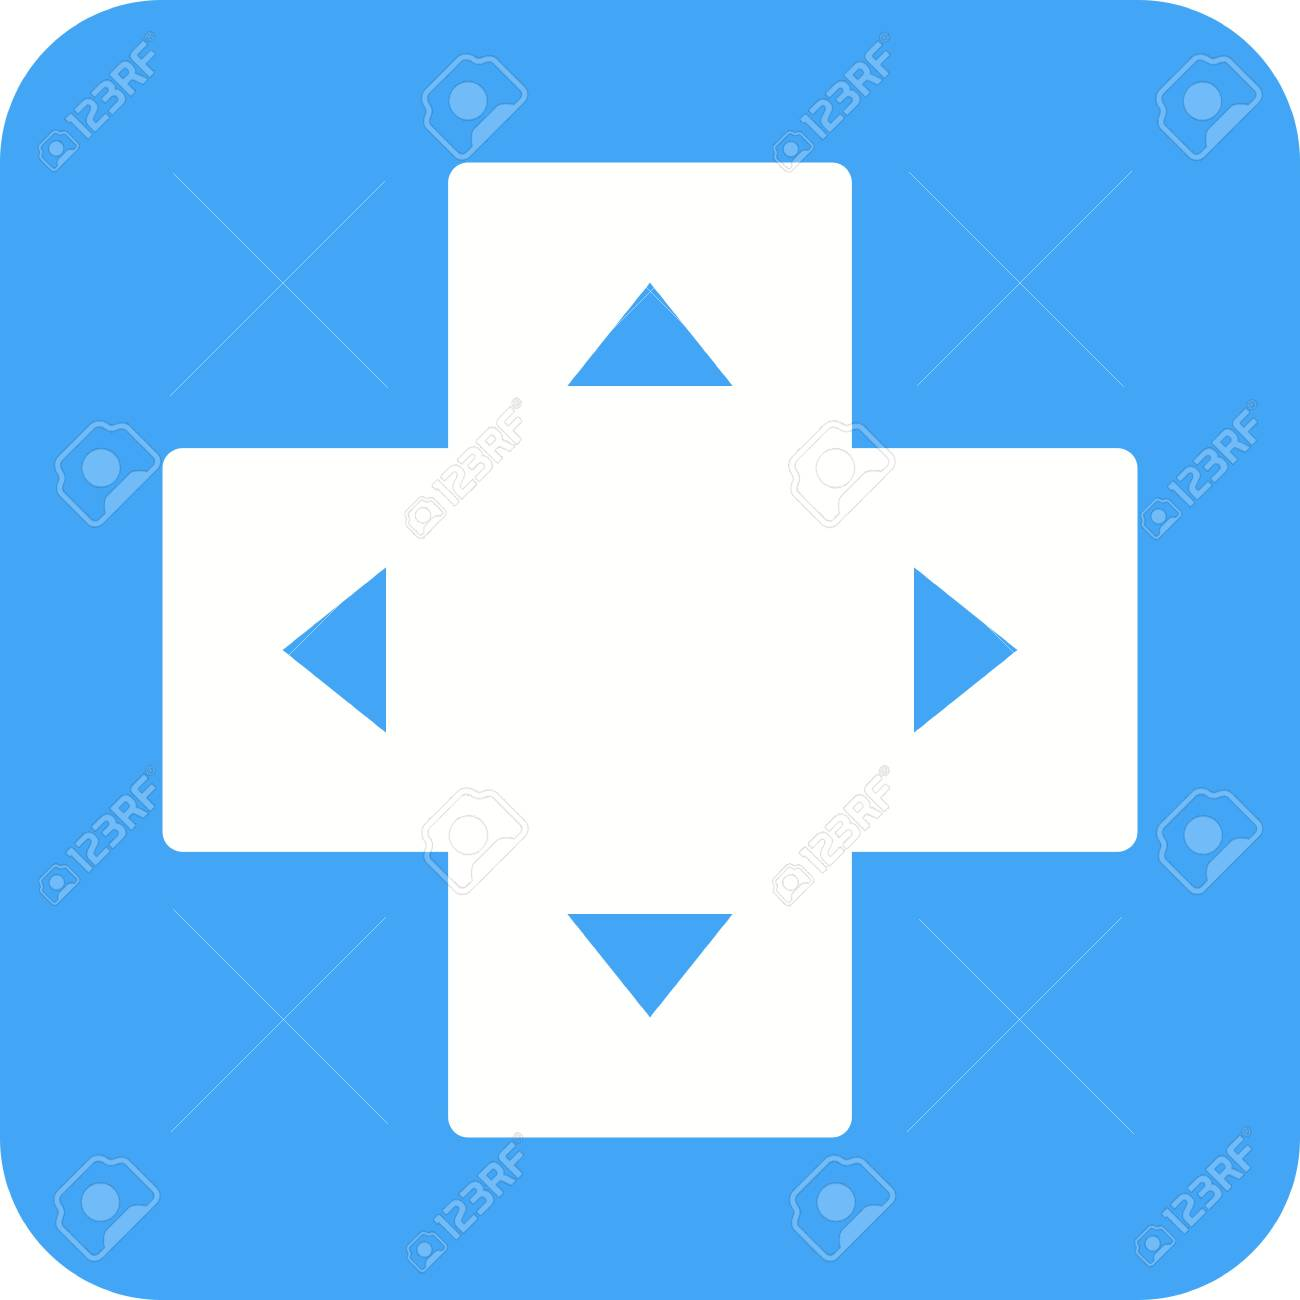 Game, keyboard, arrow icon vector image Can also be used for